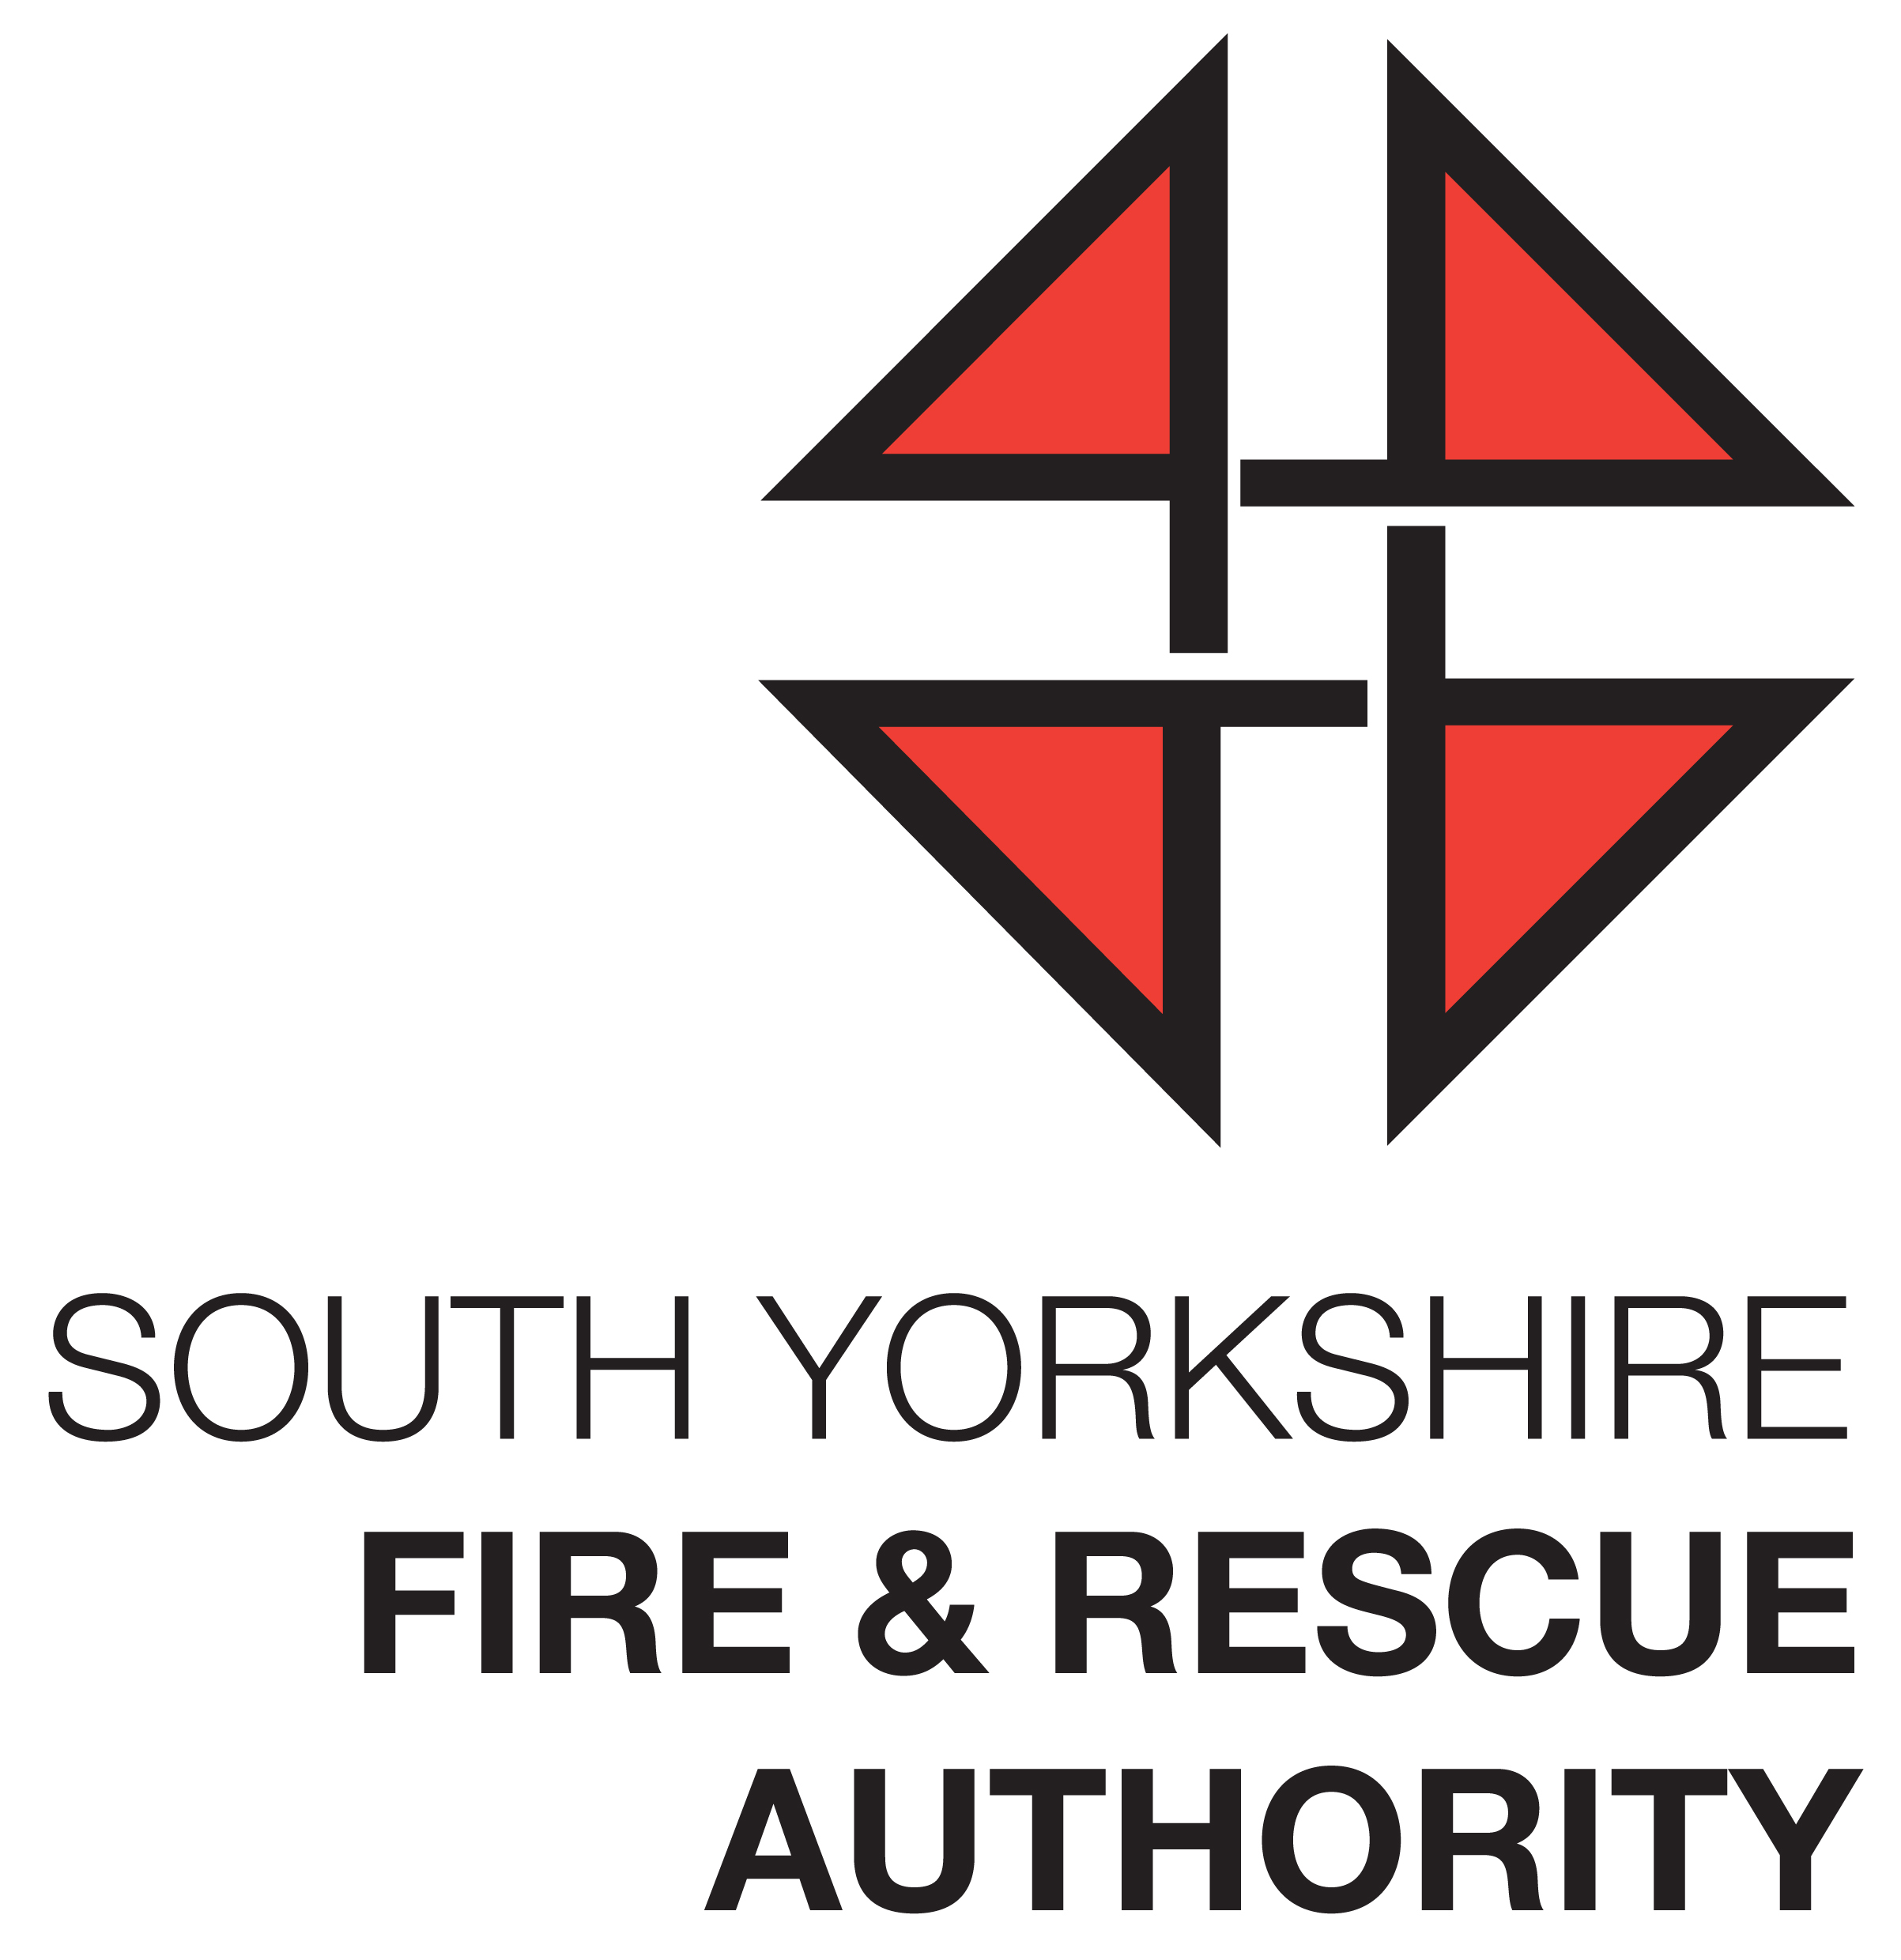 South Yorkshire Fire & Rescue Authority